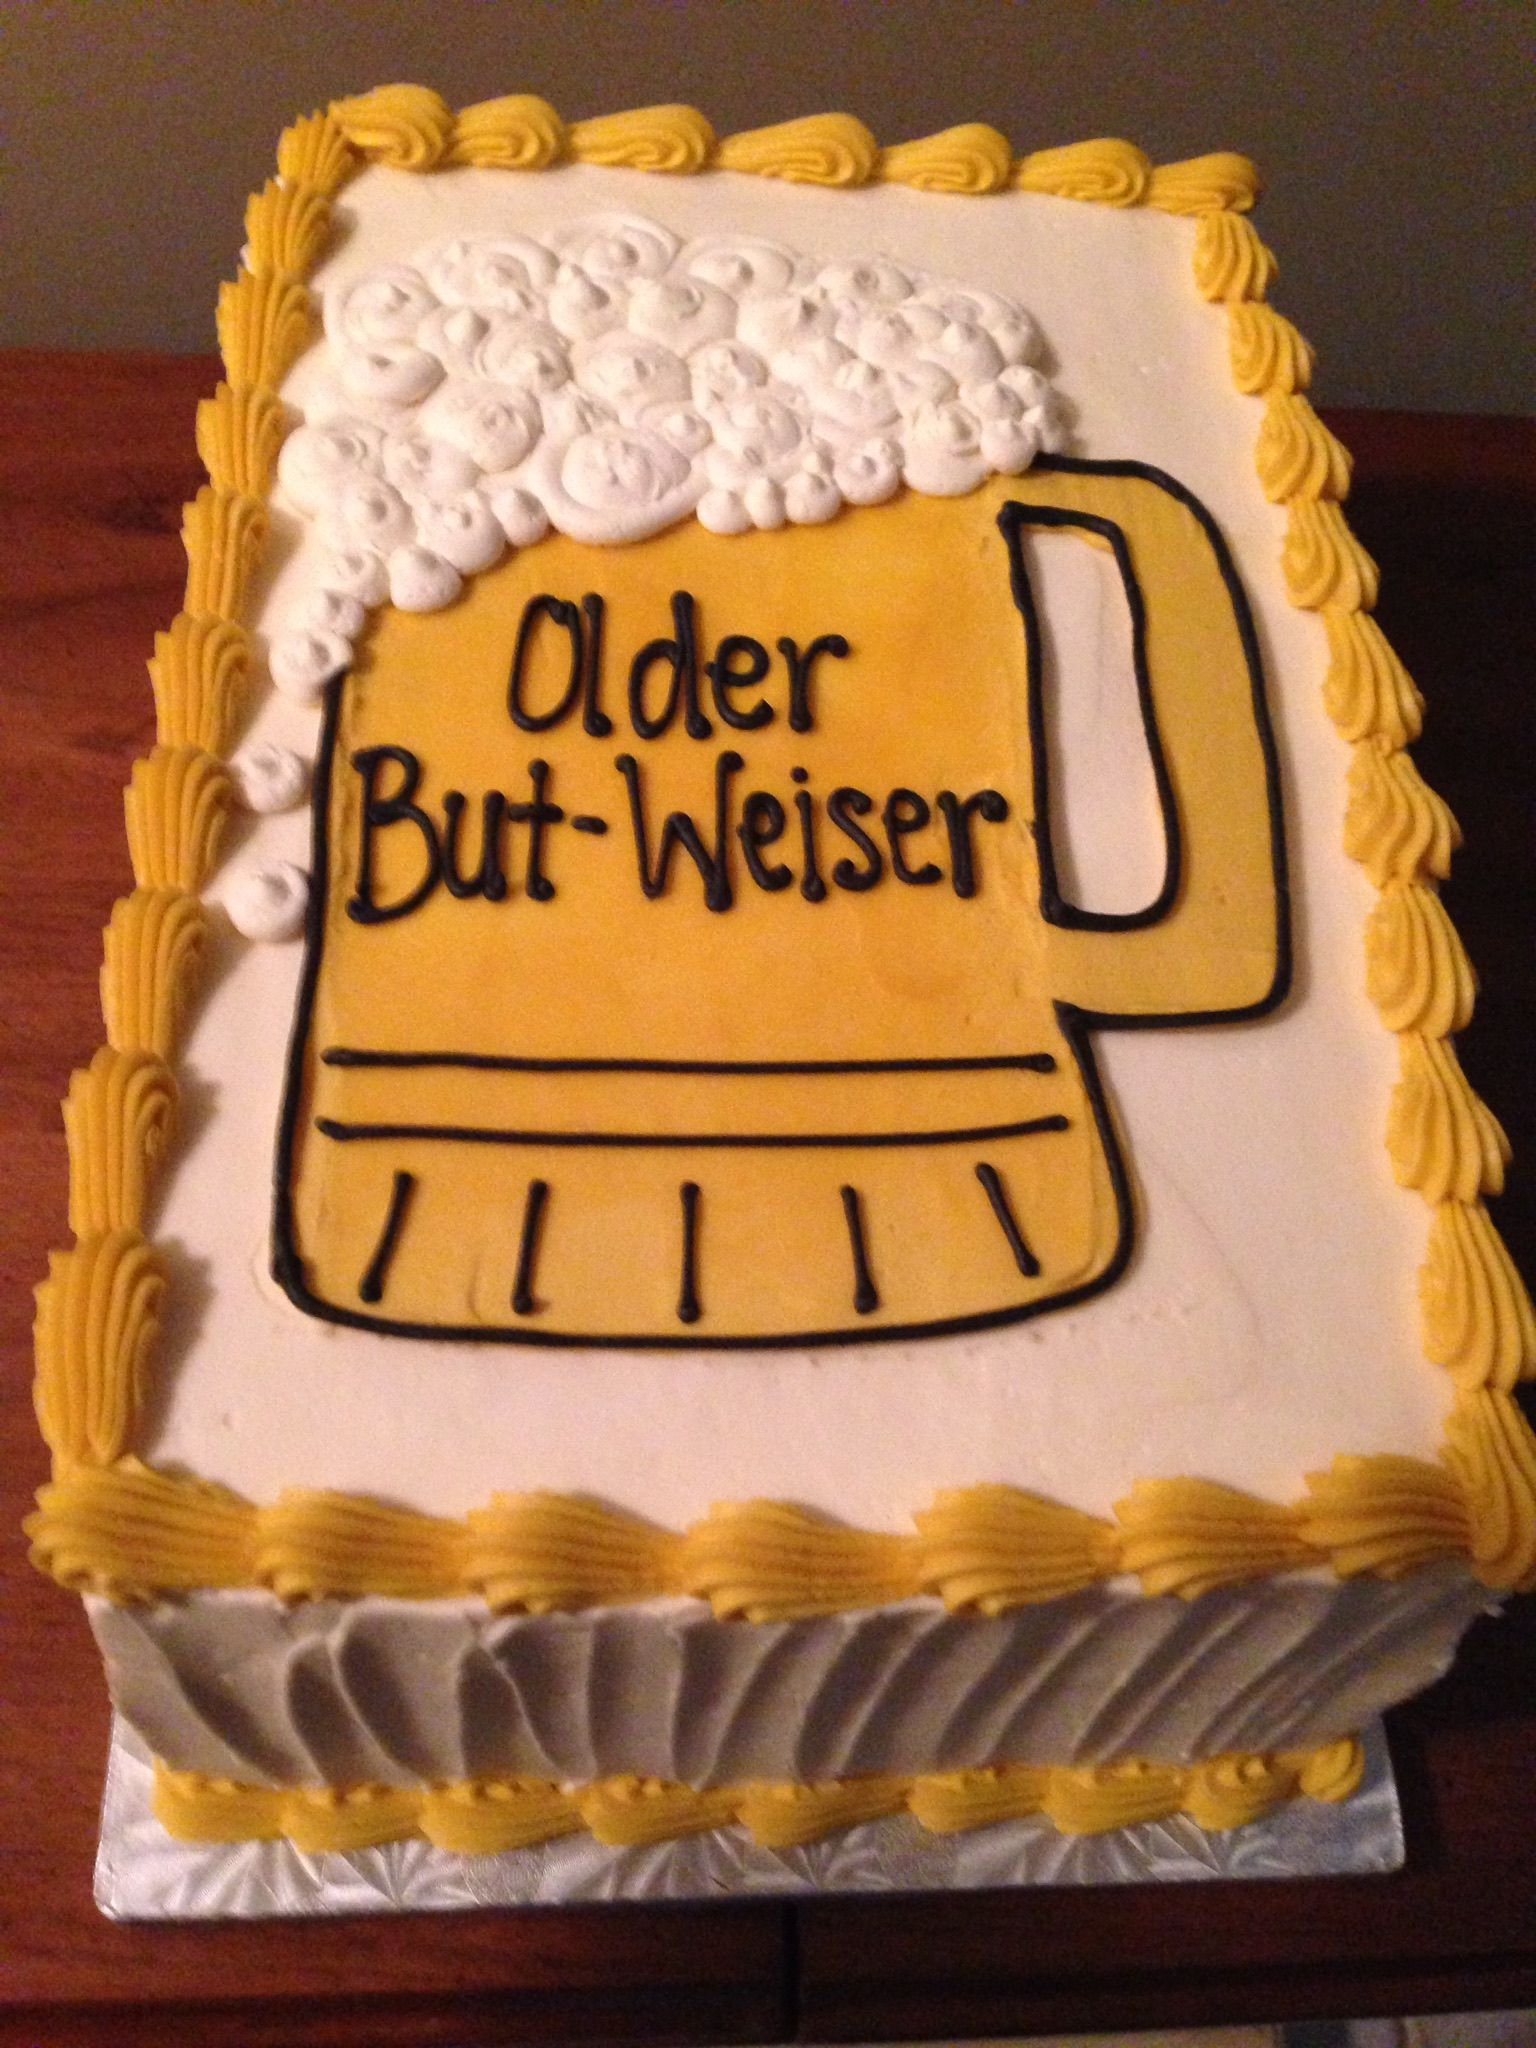 25 Terribly Unfortunate But Hilarious Birthday Cakes For An Unforgettably Awkward Celebration